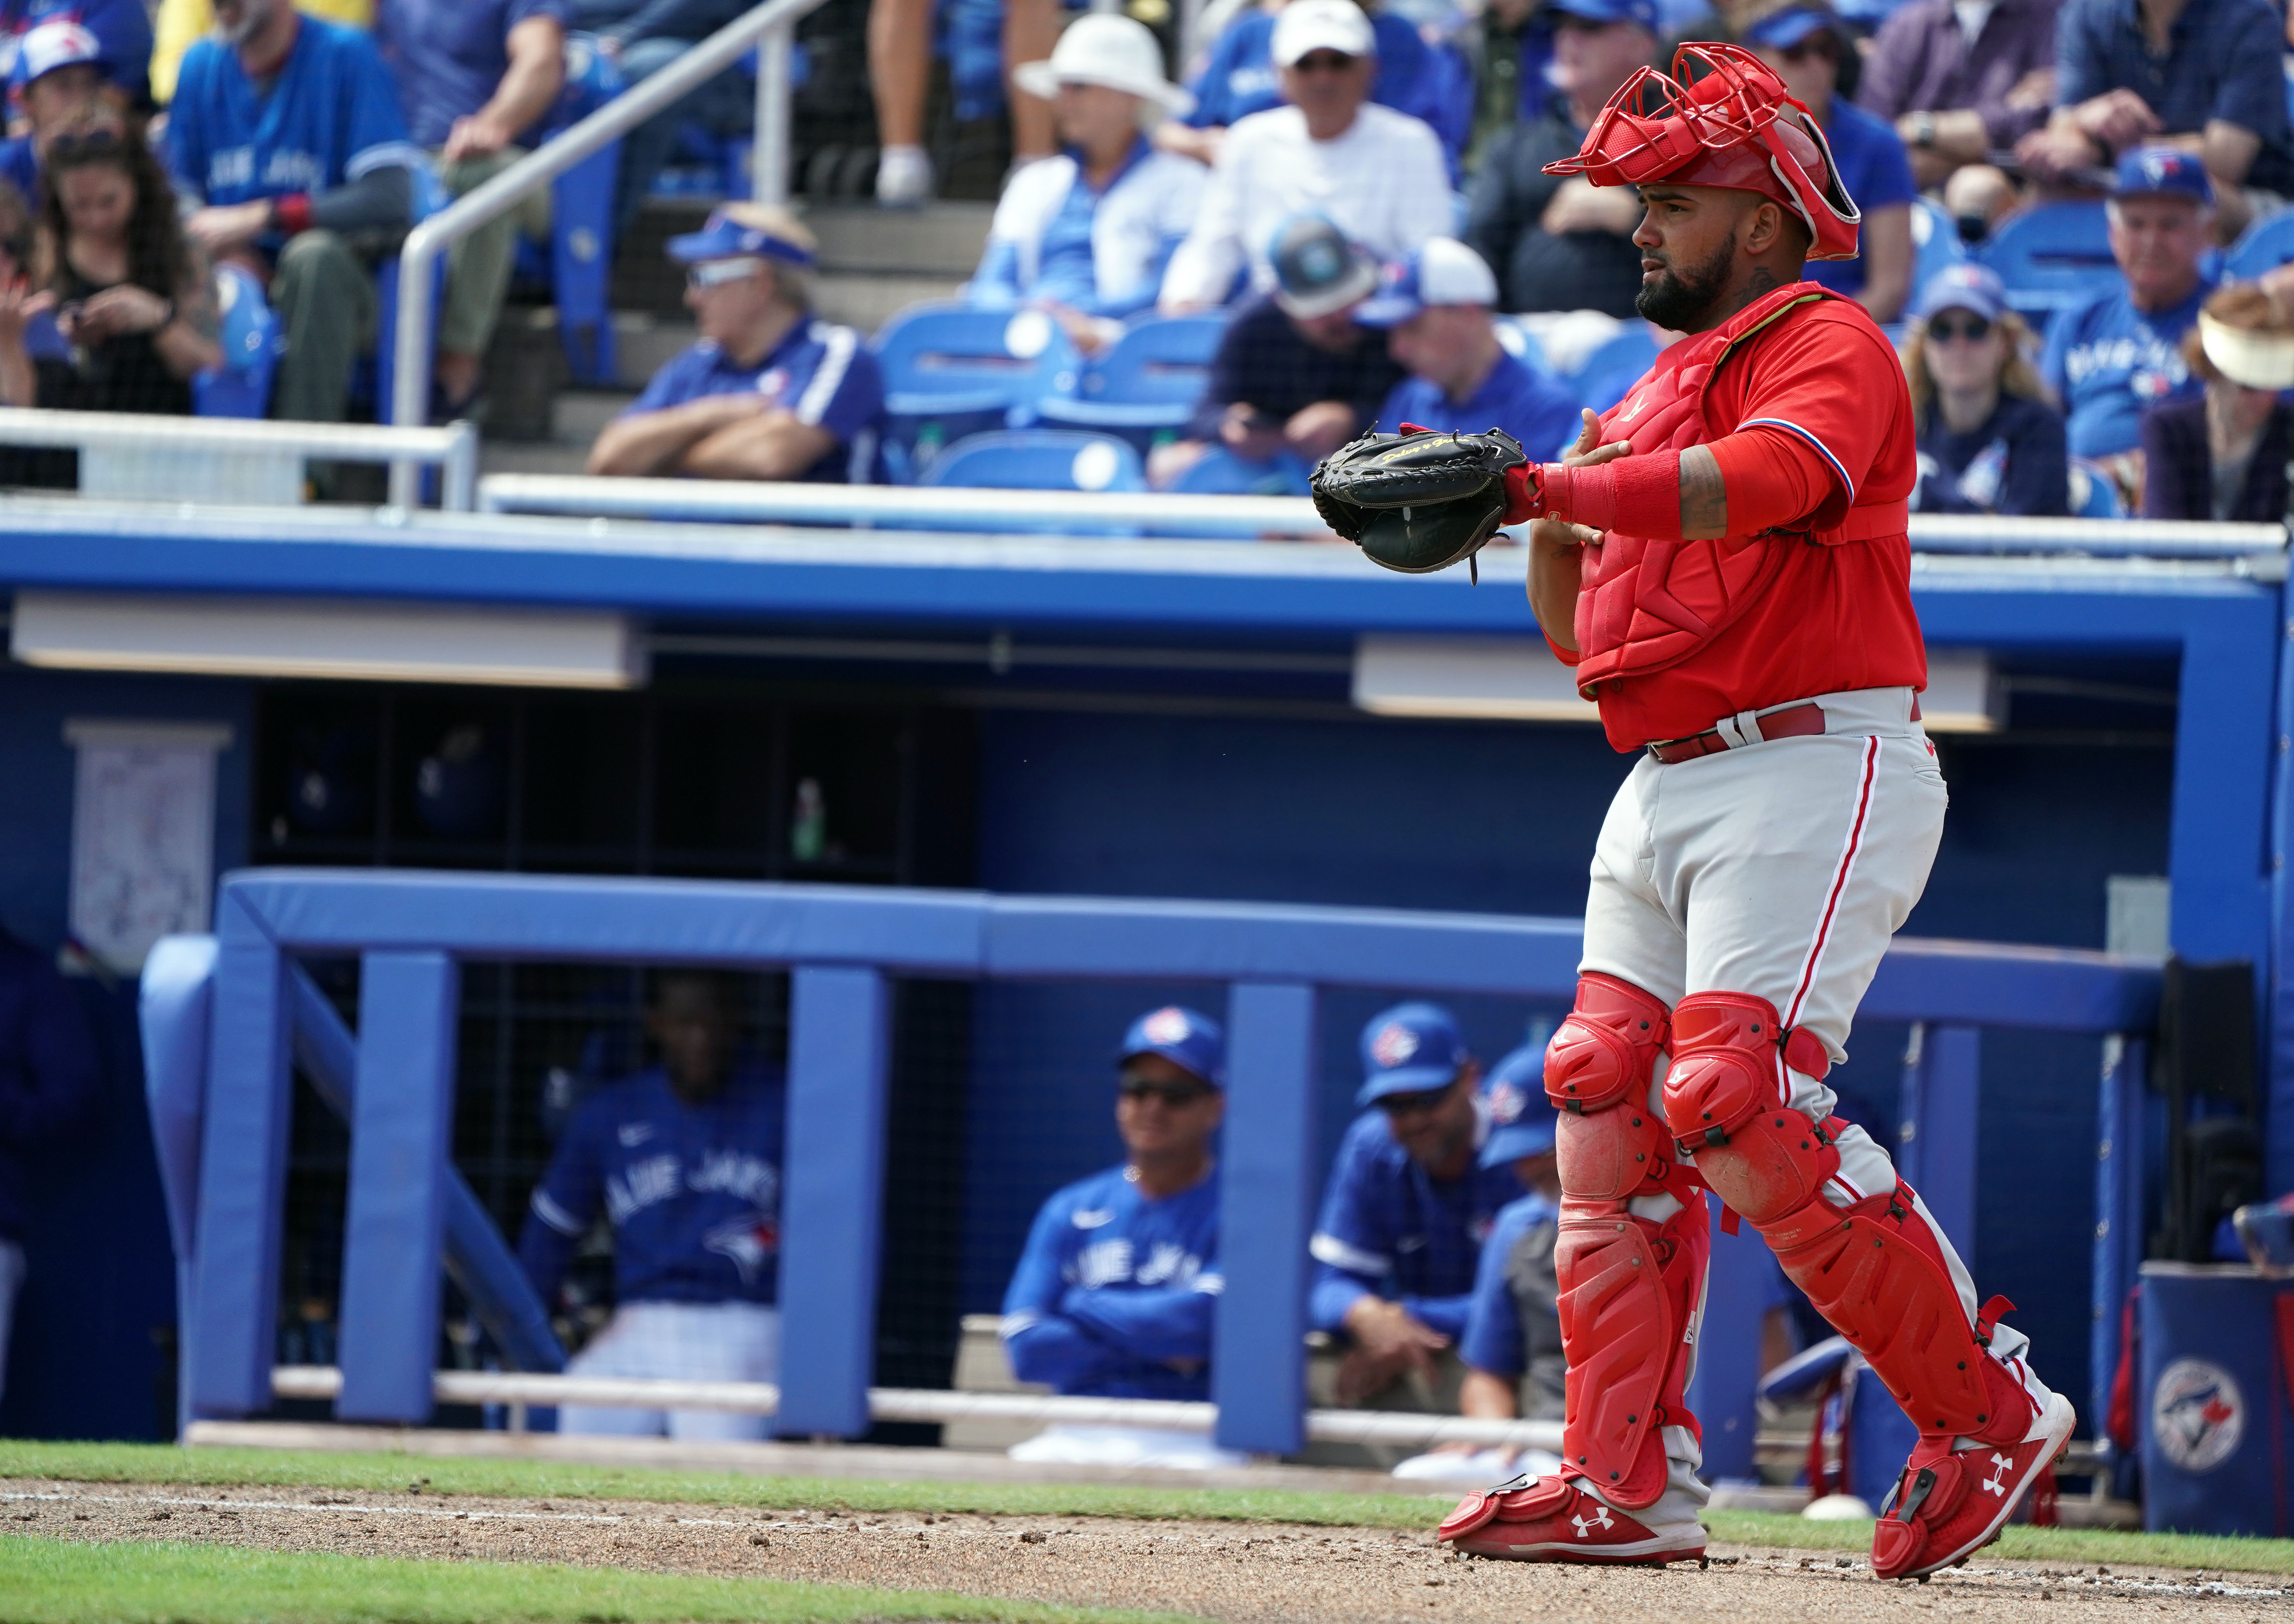 Reds claim catcher Deivy Grullon off waivers from Red Sox